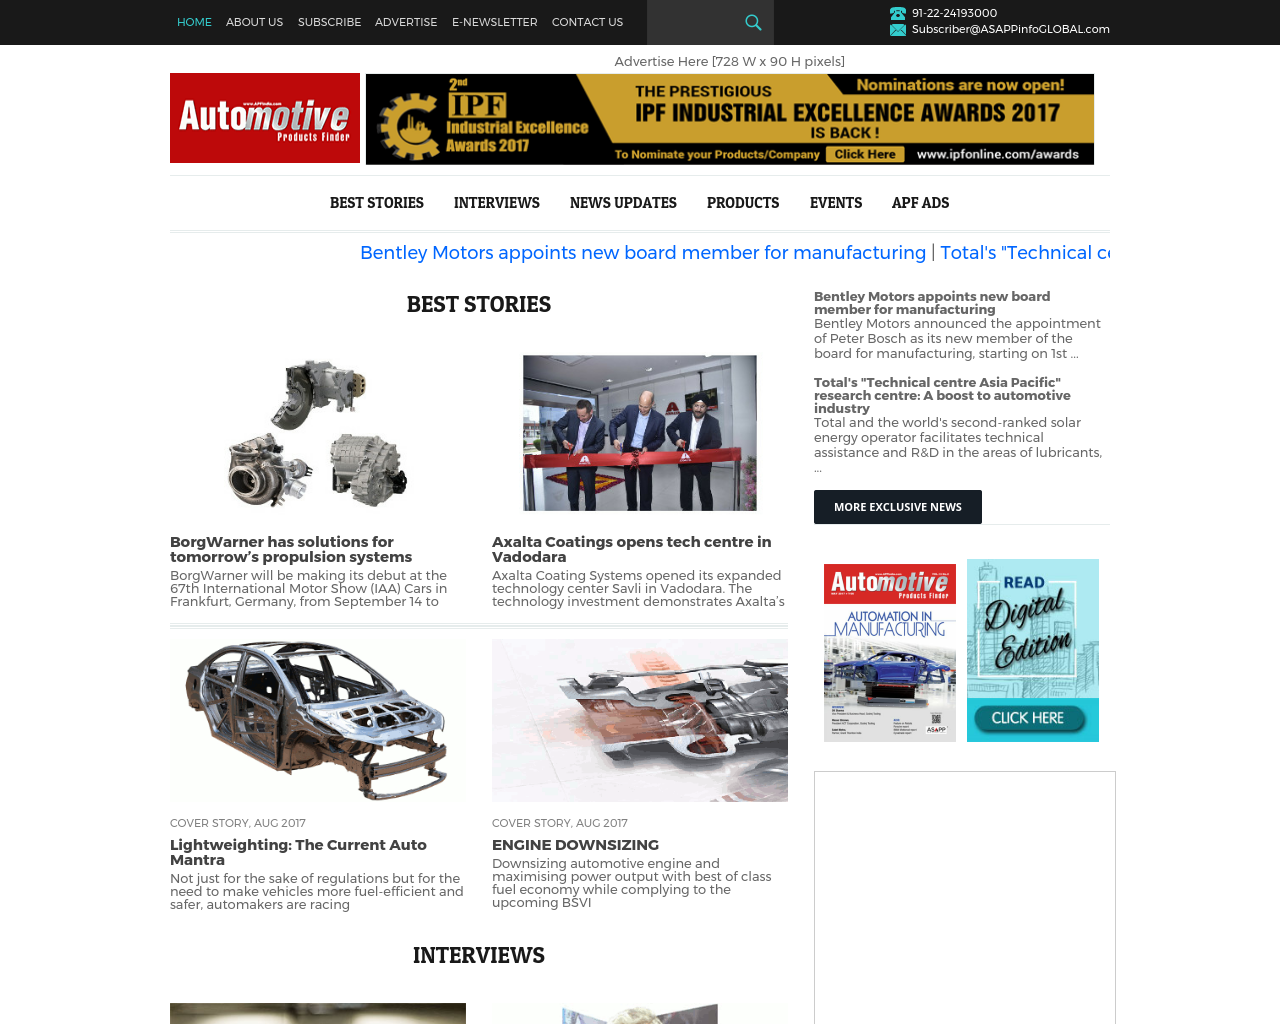 Automotive-Products-Finder-Advertising-Reviews-Pricing